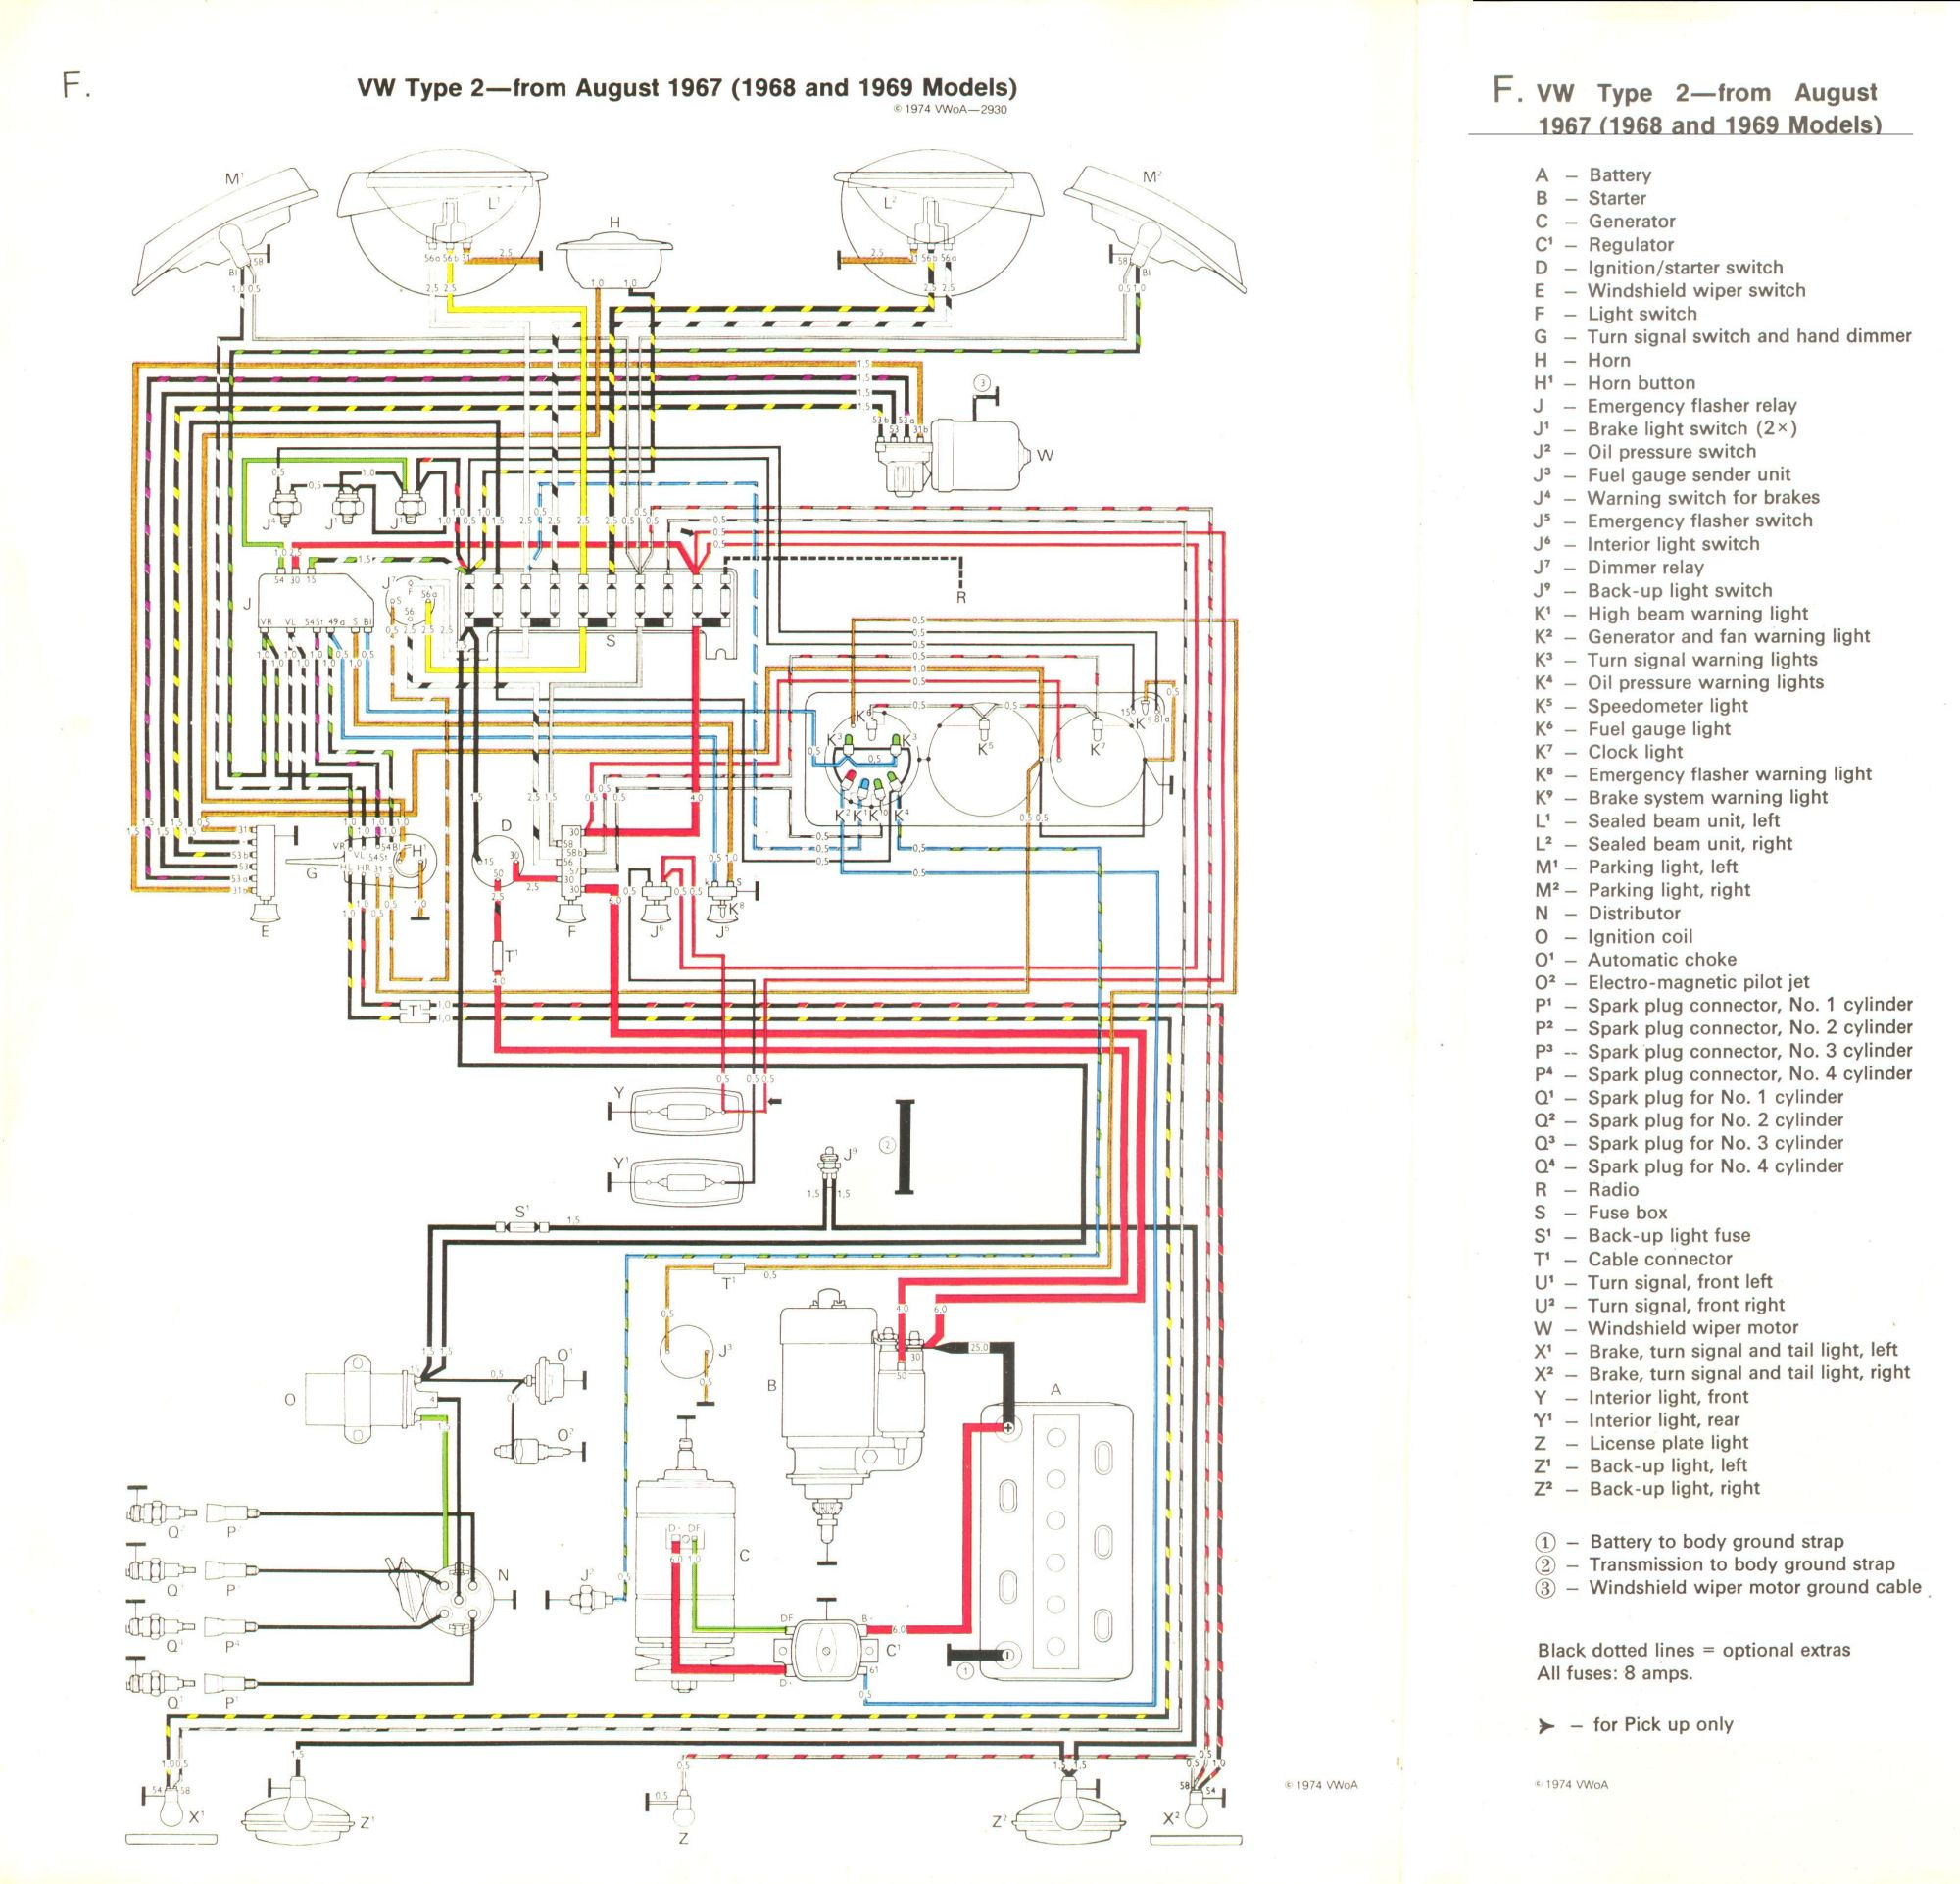 hight resolution of vw wiring diagrams bus 68 69 vw wiring diagrams 1973 vw beetle fuse box diagram at cita asia